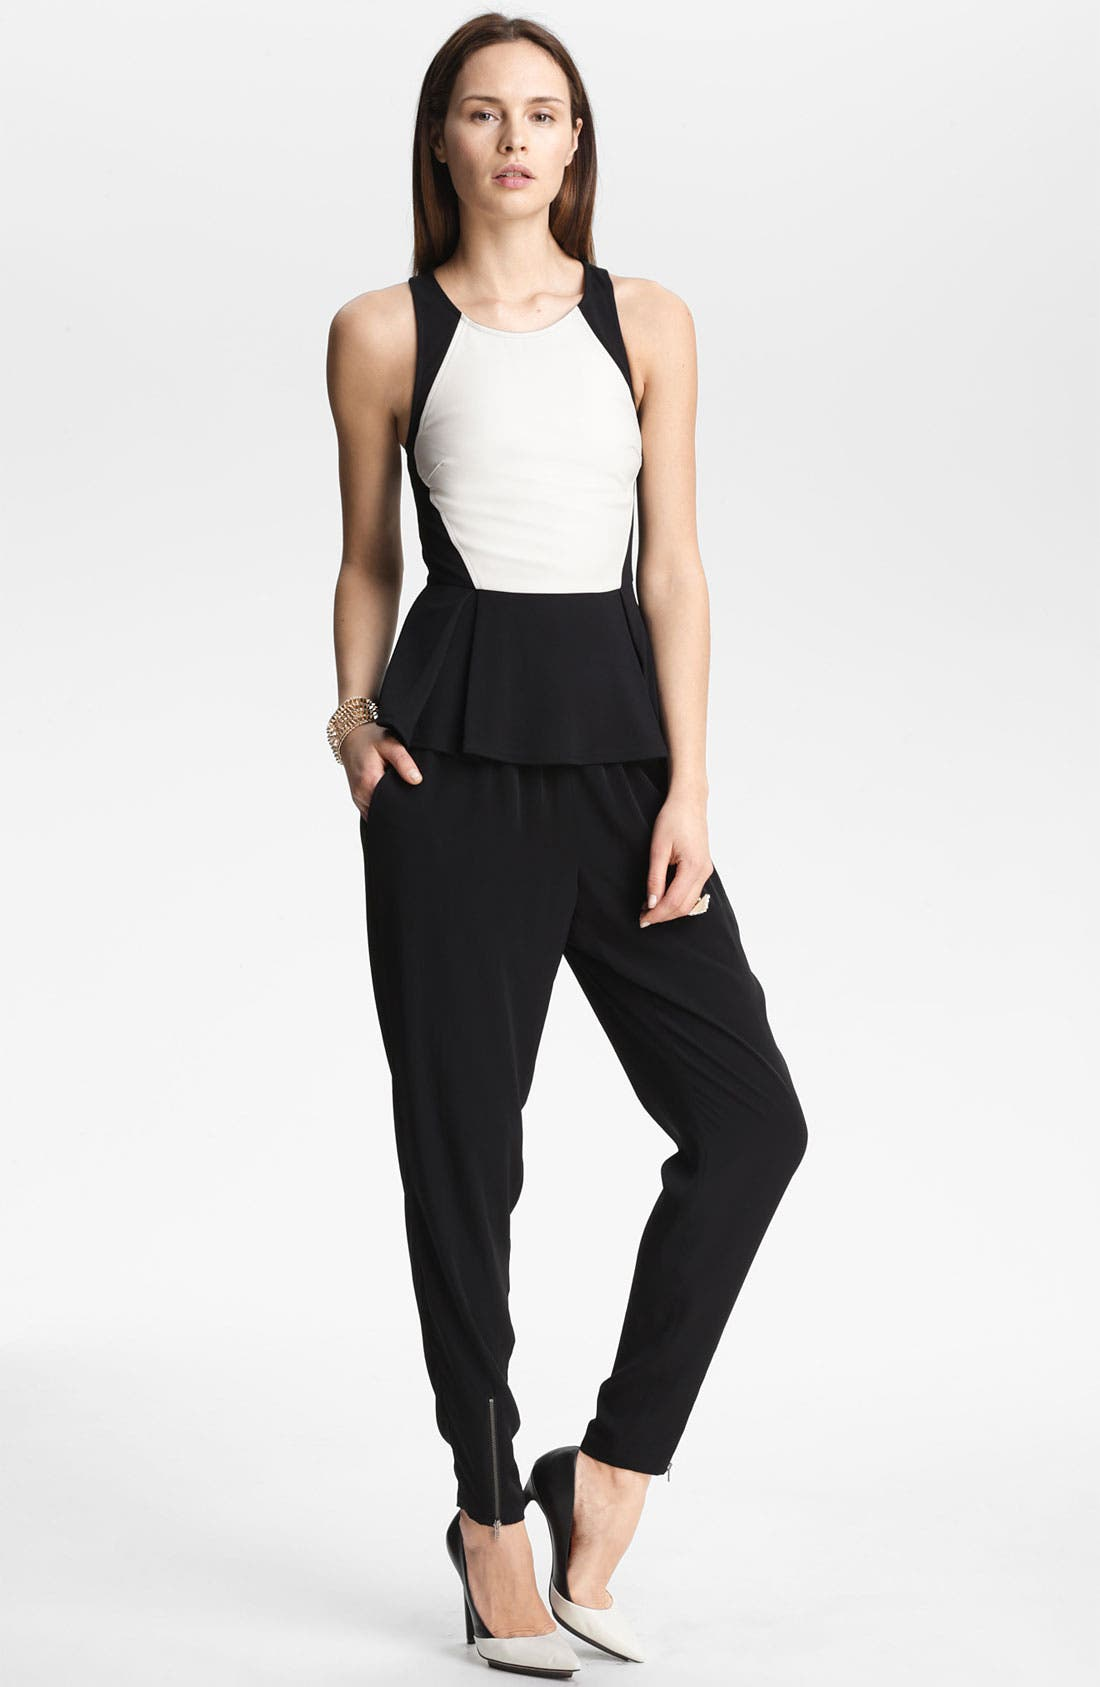 Alternate Image 1 Selected - ASTR Peplum Tank & Leith Pants